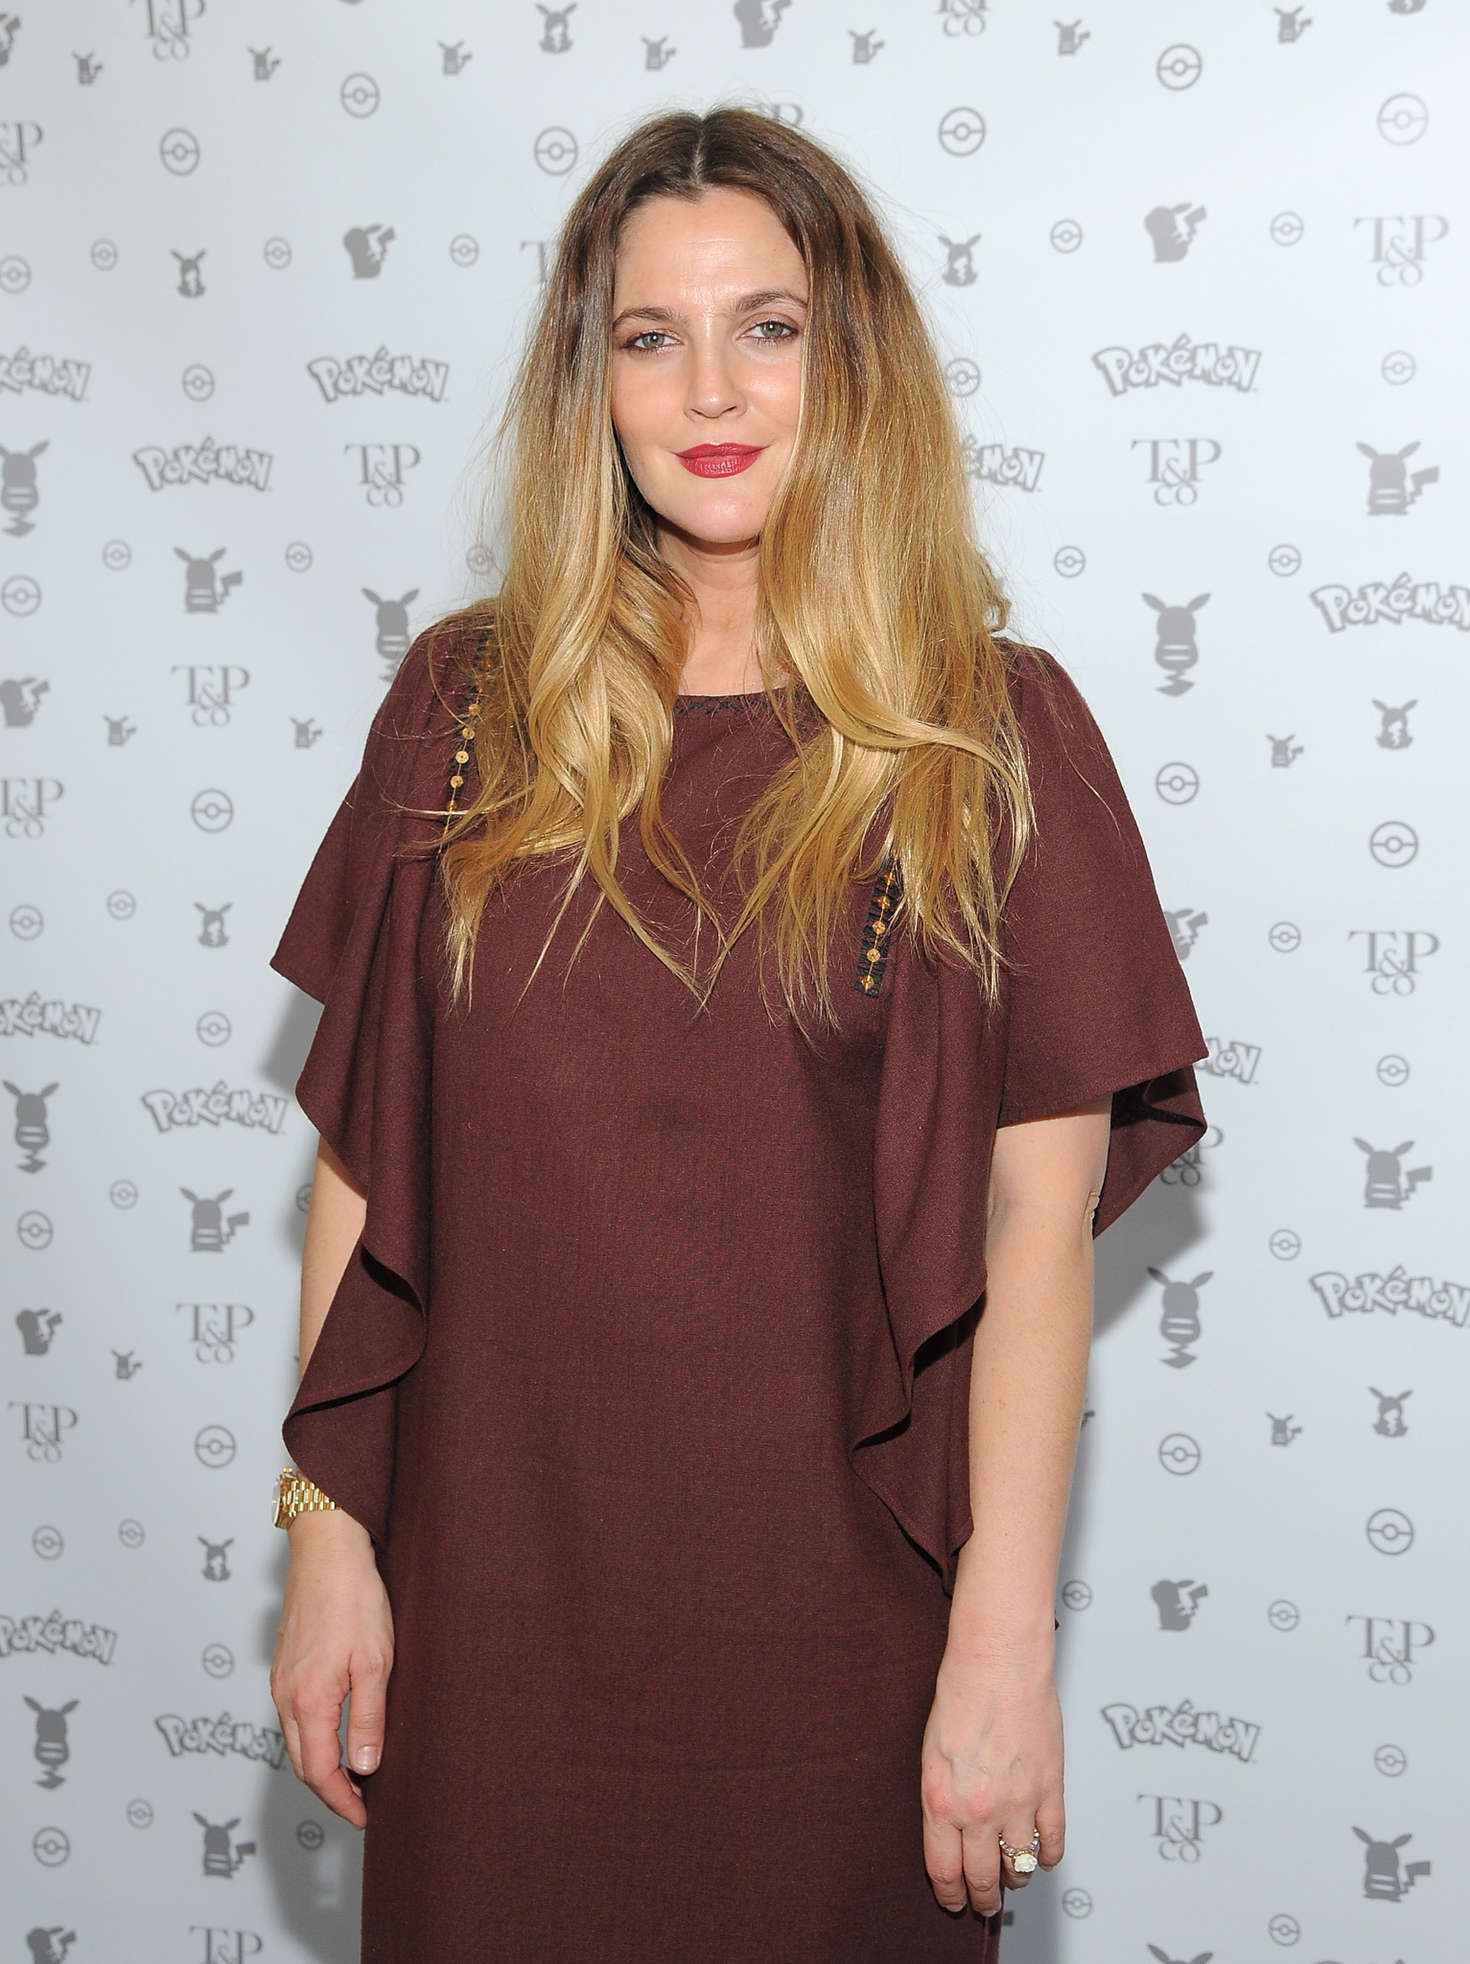 Drew Barrymore 2016 : Drew Barrymore: Tracy Paul and Co Presents Pokemon Afternoon Soiree -14